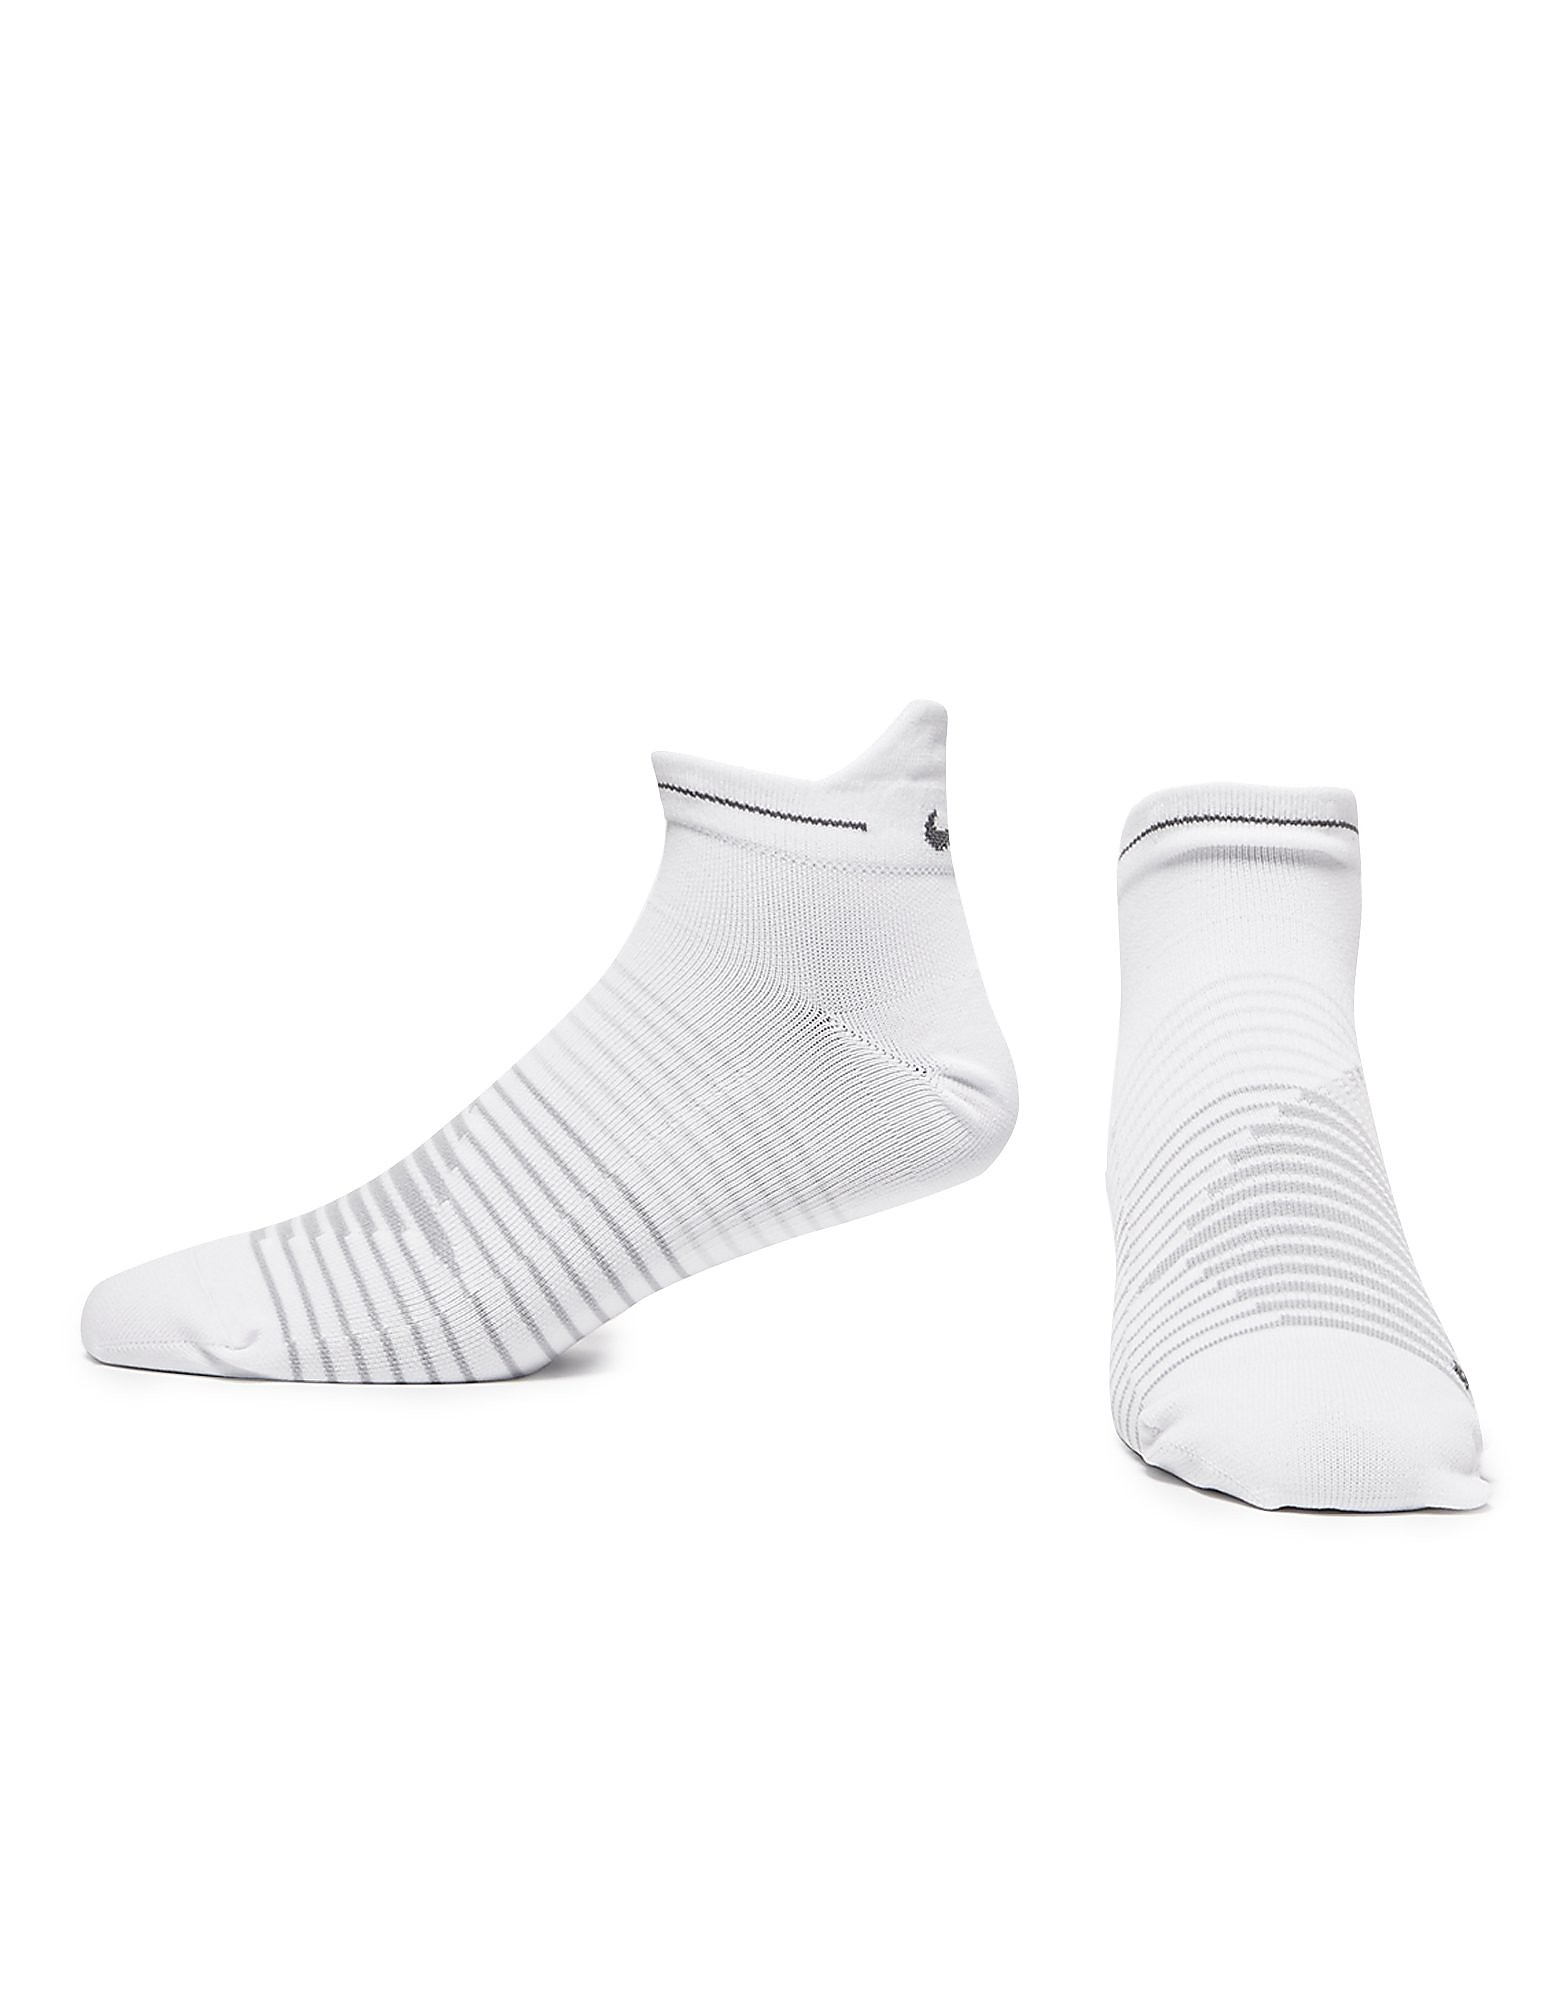 Nike calcetines Run Performance Lightweight